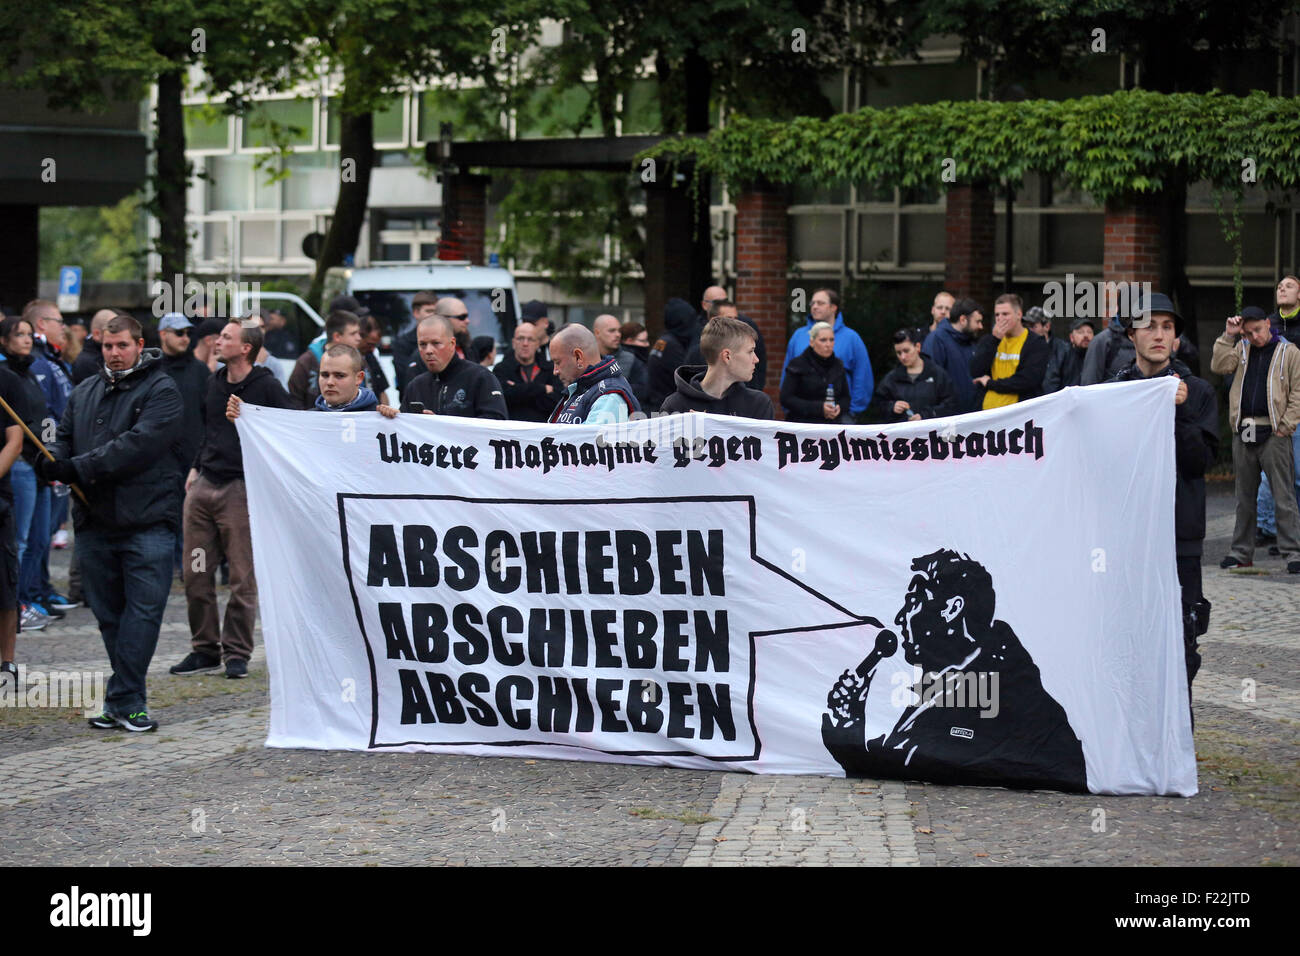 Supporters of the german far right neo-nazi party DIE RECHTE (the rights)  protest in Dortmund/Germany, Sept. 9th. Stock Photo